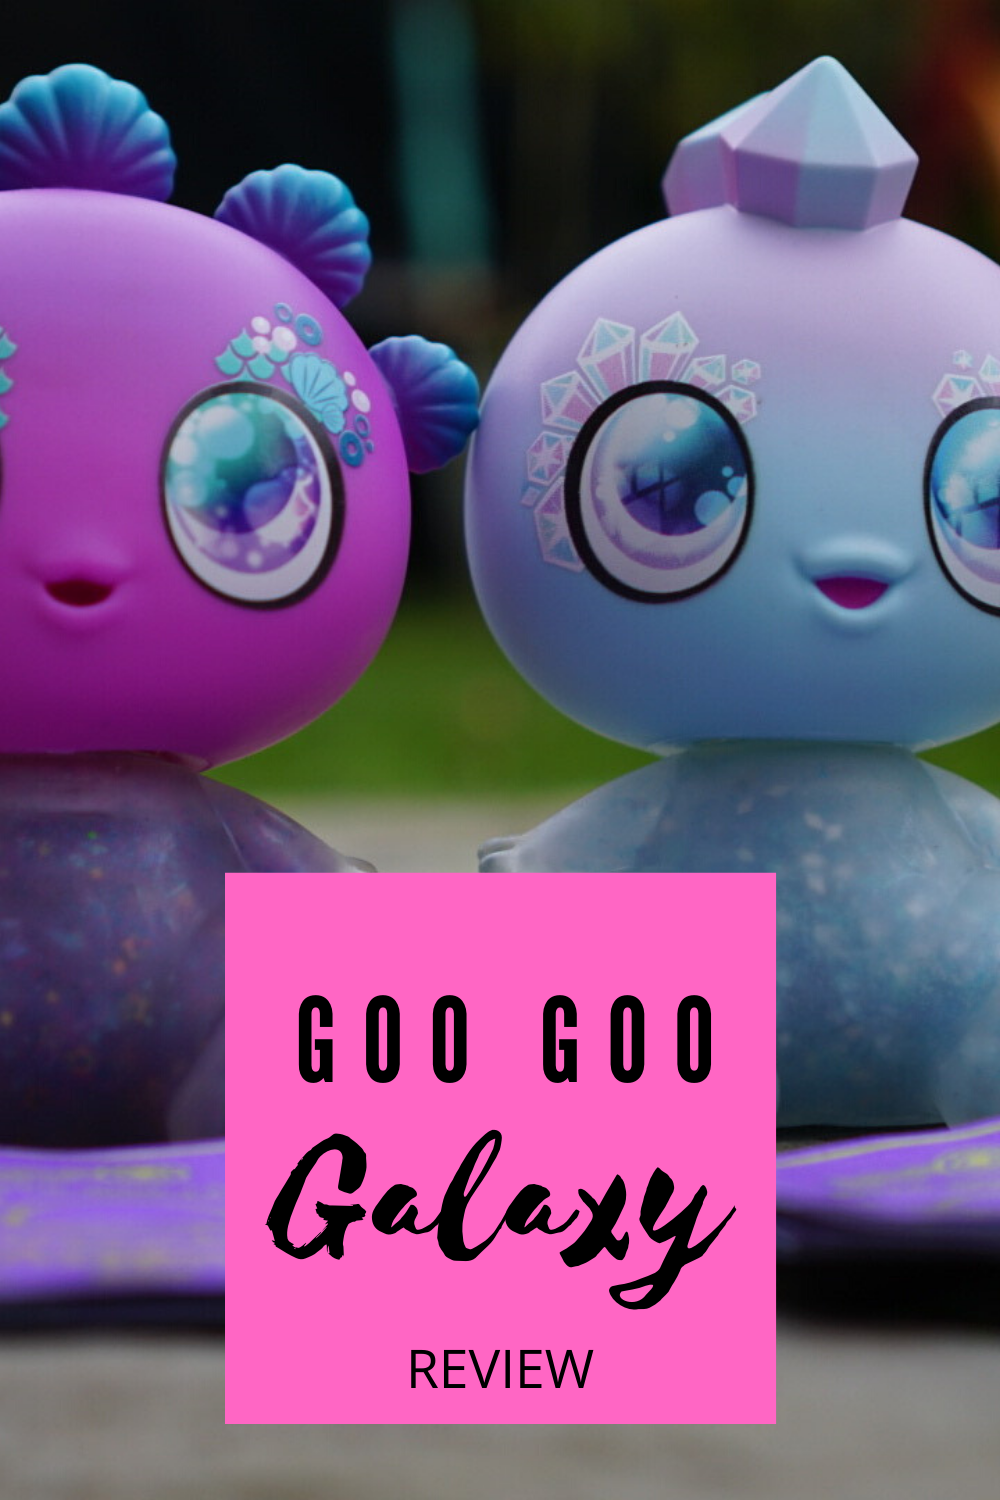 GOO GOO Galaxy review